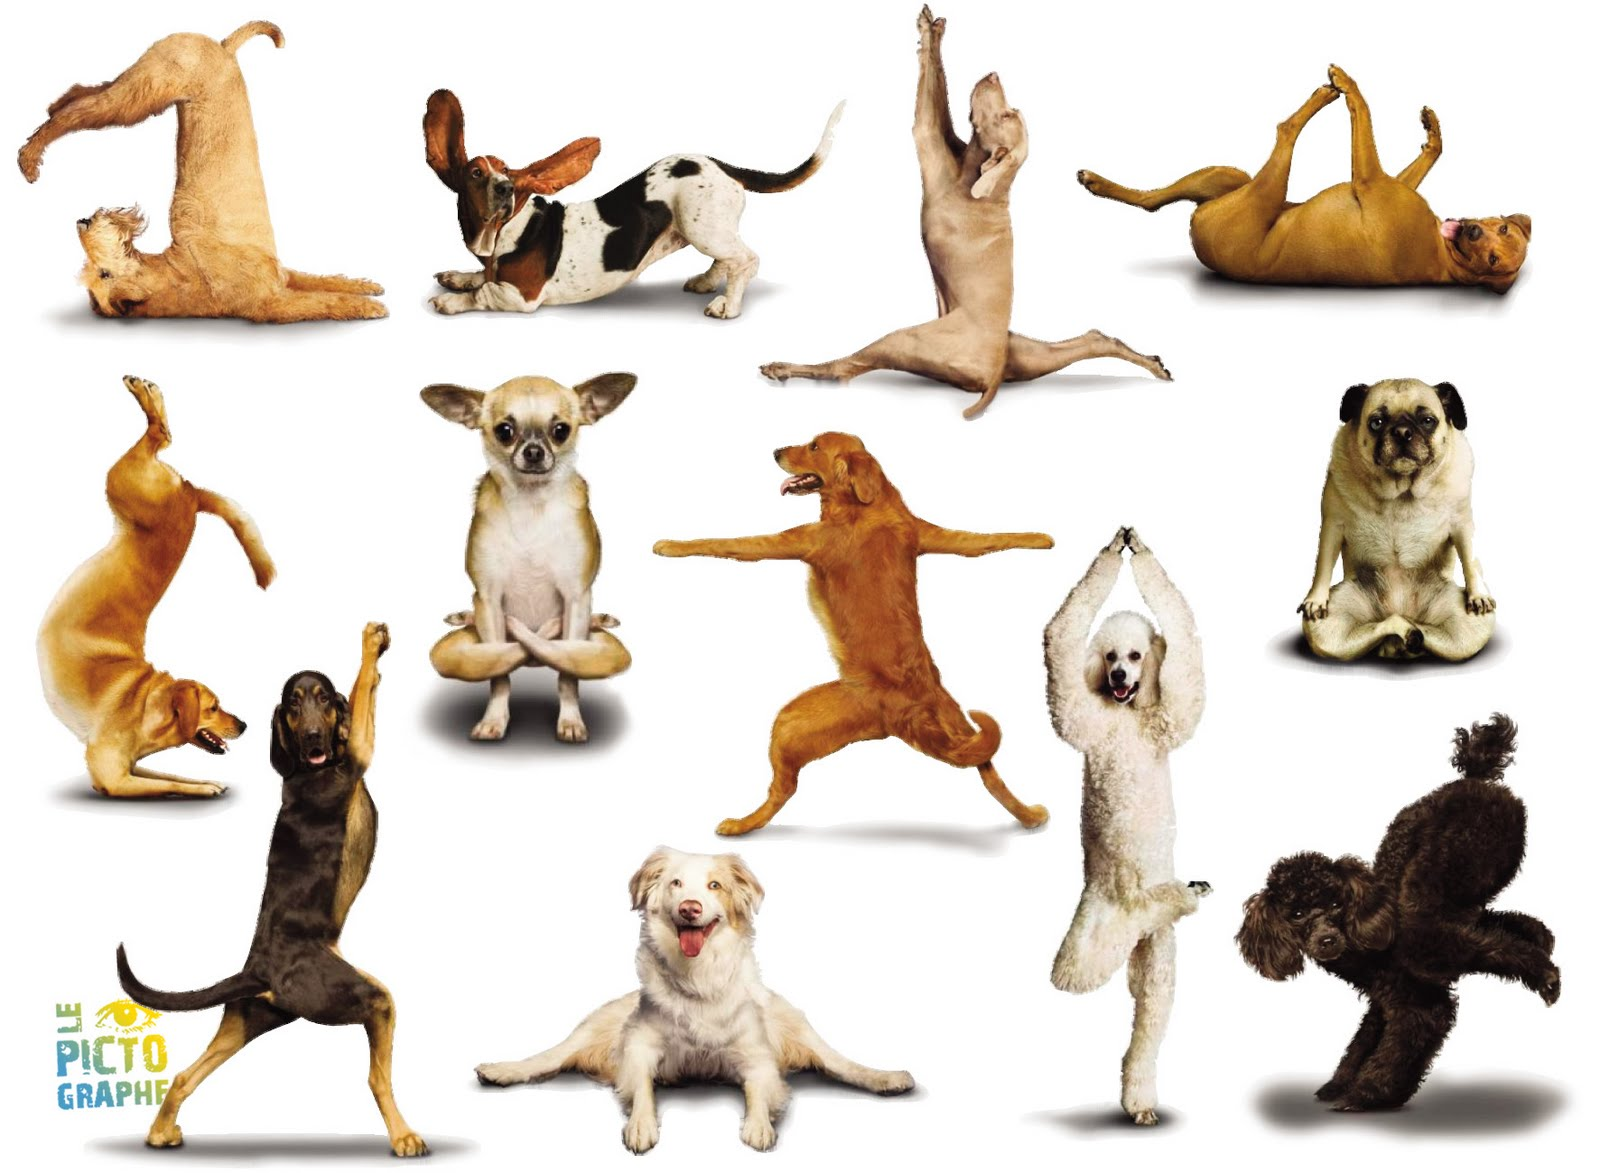 Cute Yoga Dogs -dog+yoga+dogs01.jpg""